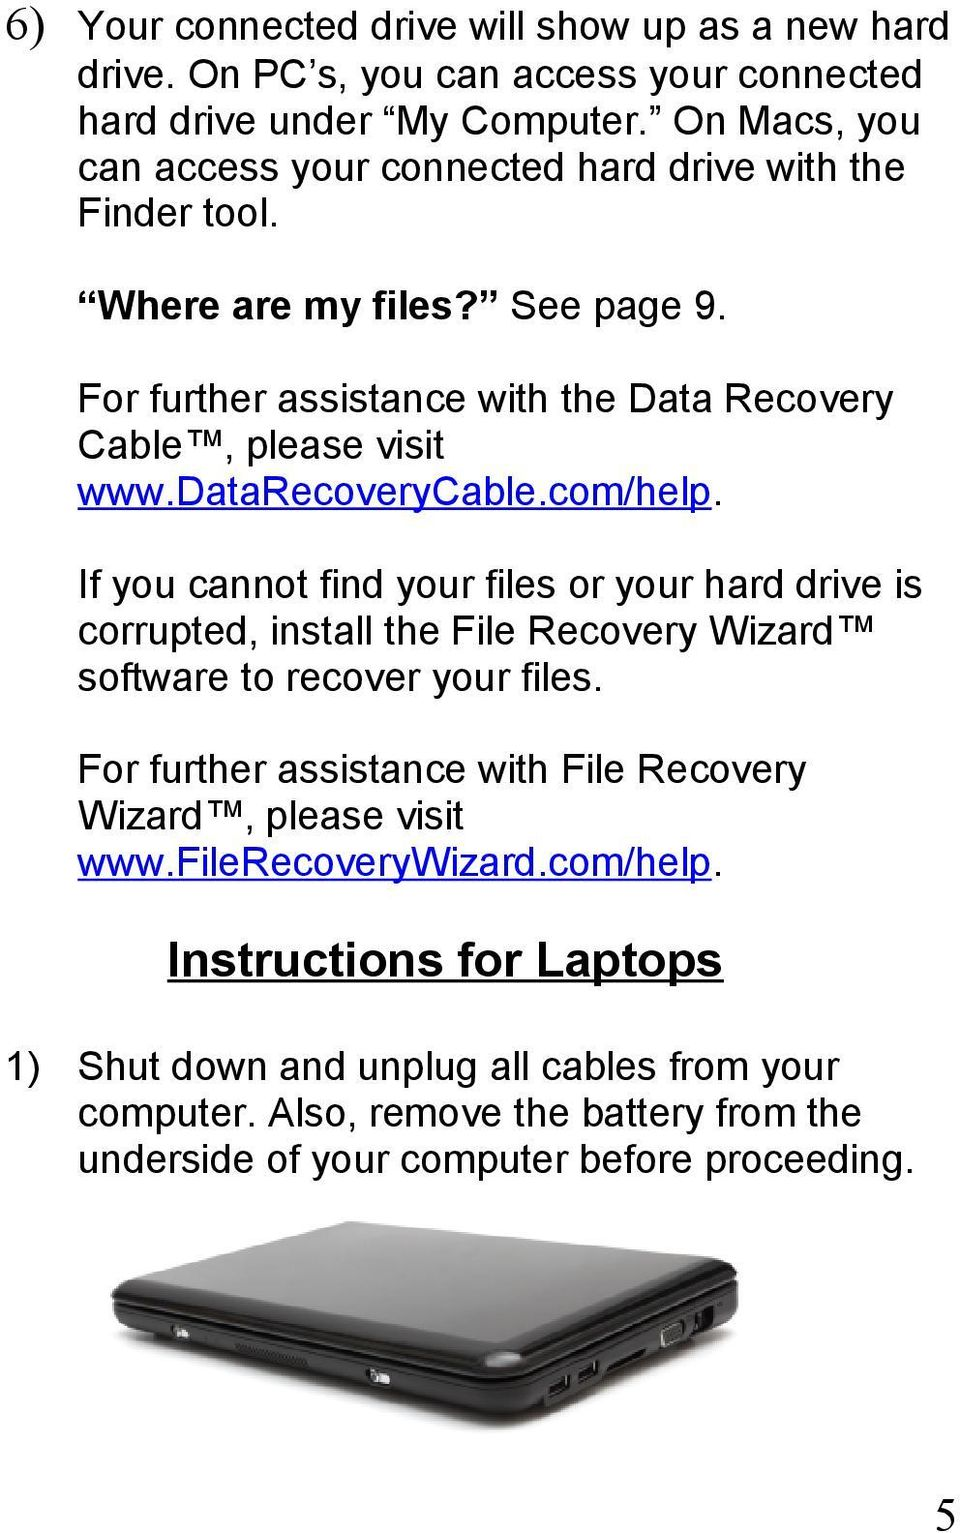 datarecoverycable.com/help. If you cannot find your files or your hard drive is corrupted, install the File Recovery Wizard software to recover your files.